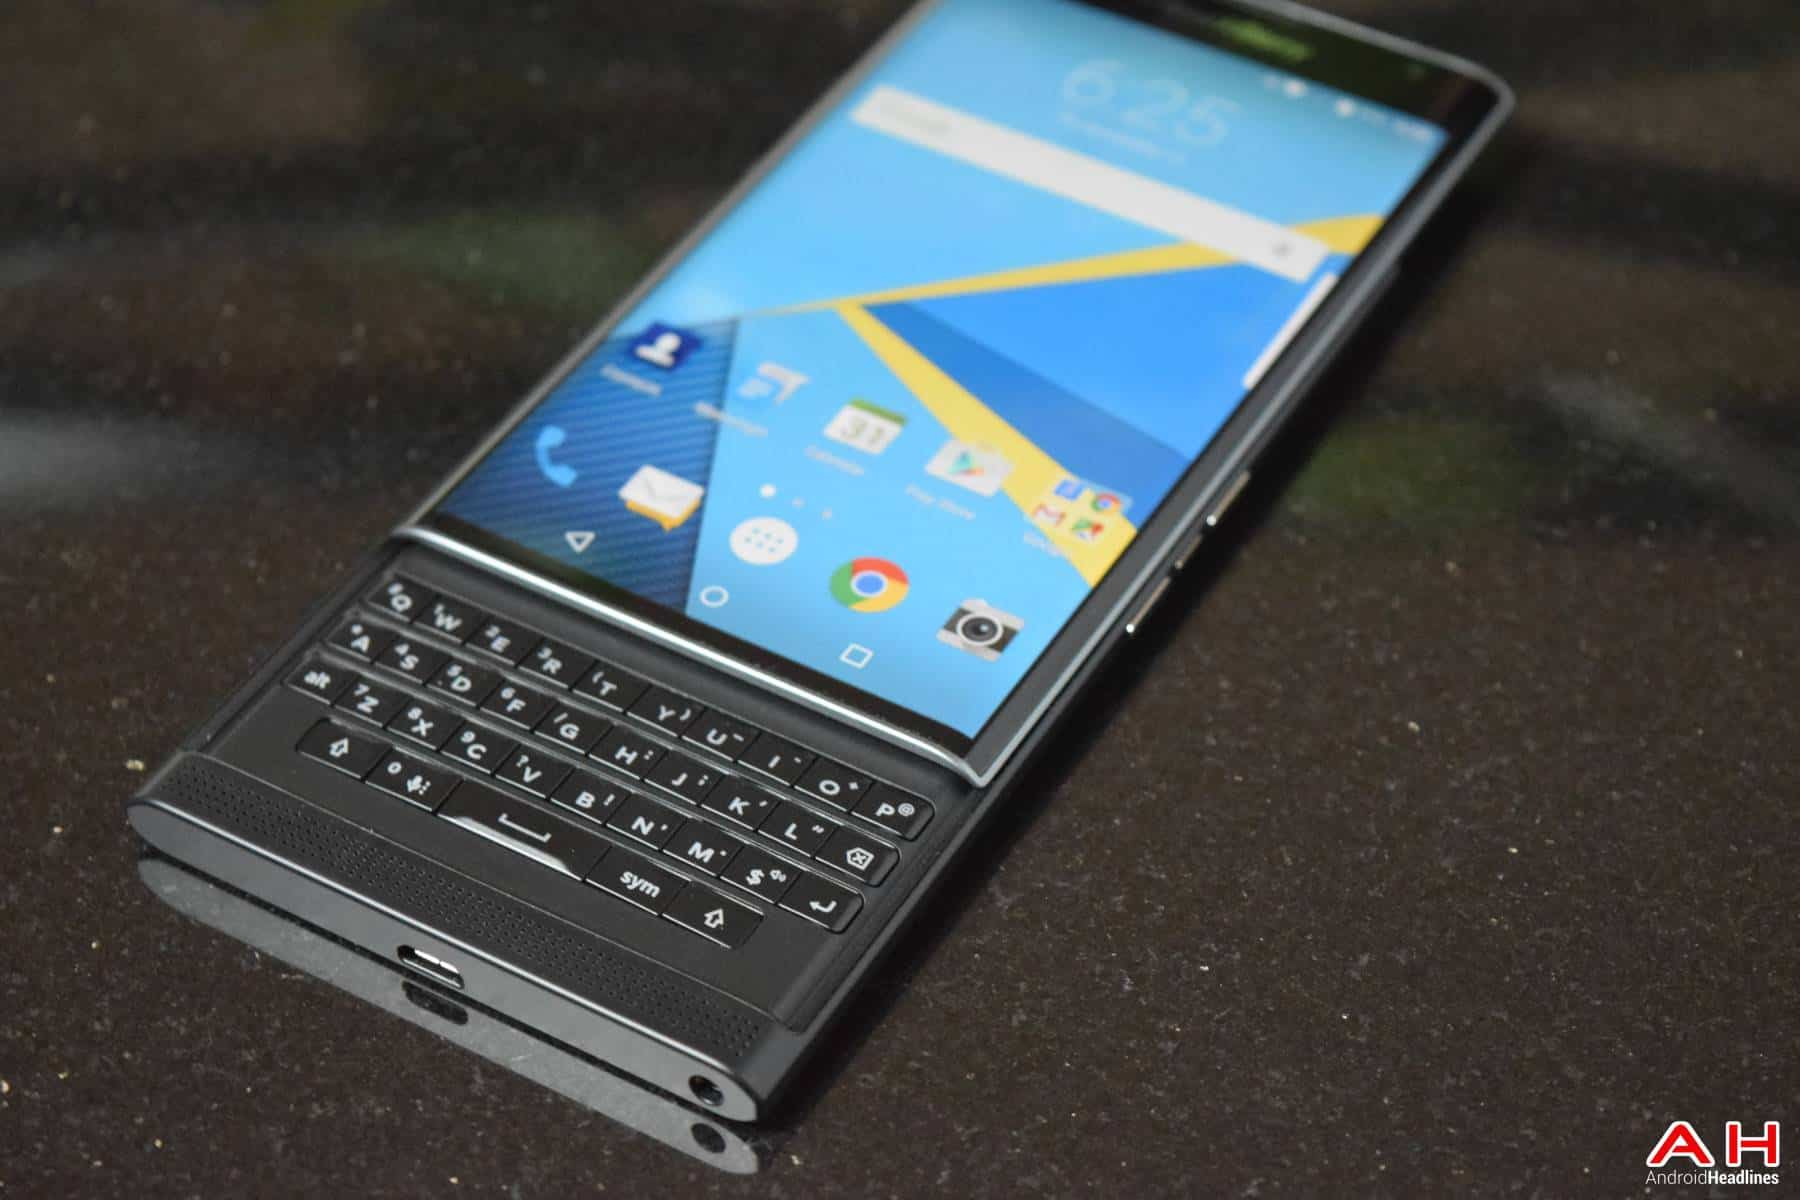 AH BB Blackberry Priv Qwerty Keyboard 2016 Chris 25